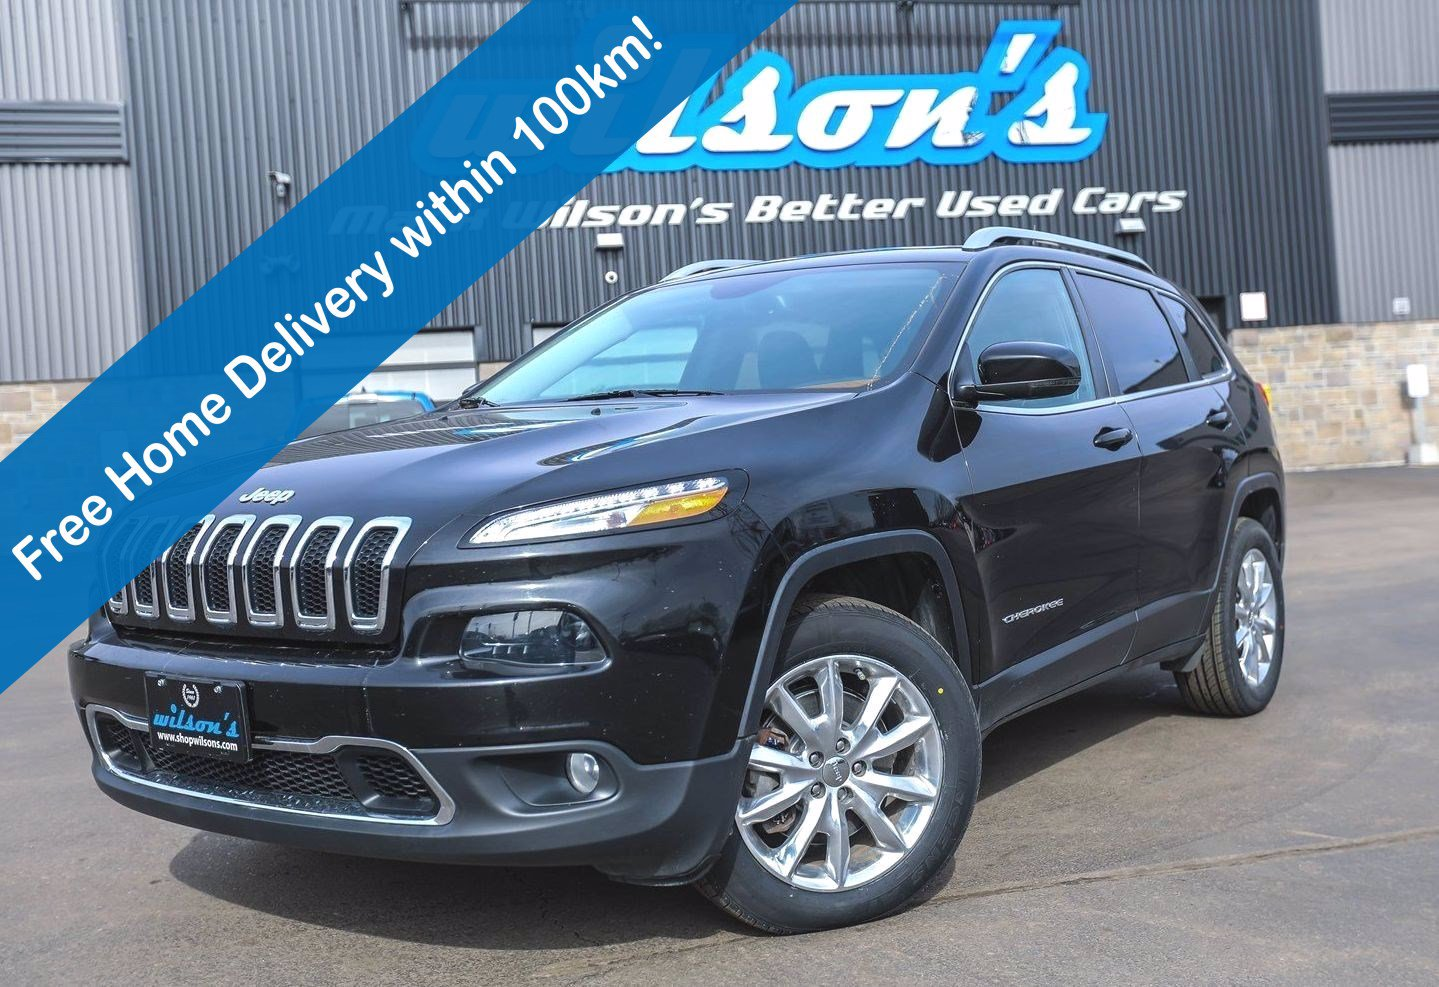 Certified Pre-Owned 2016 Jeep Cherokee Limited 4x4, Leather, Navigation, Sunroof, Heated Steering + Seats, Remote Start and more!